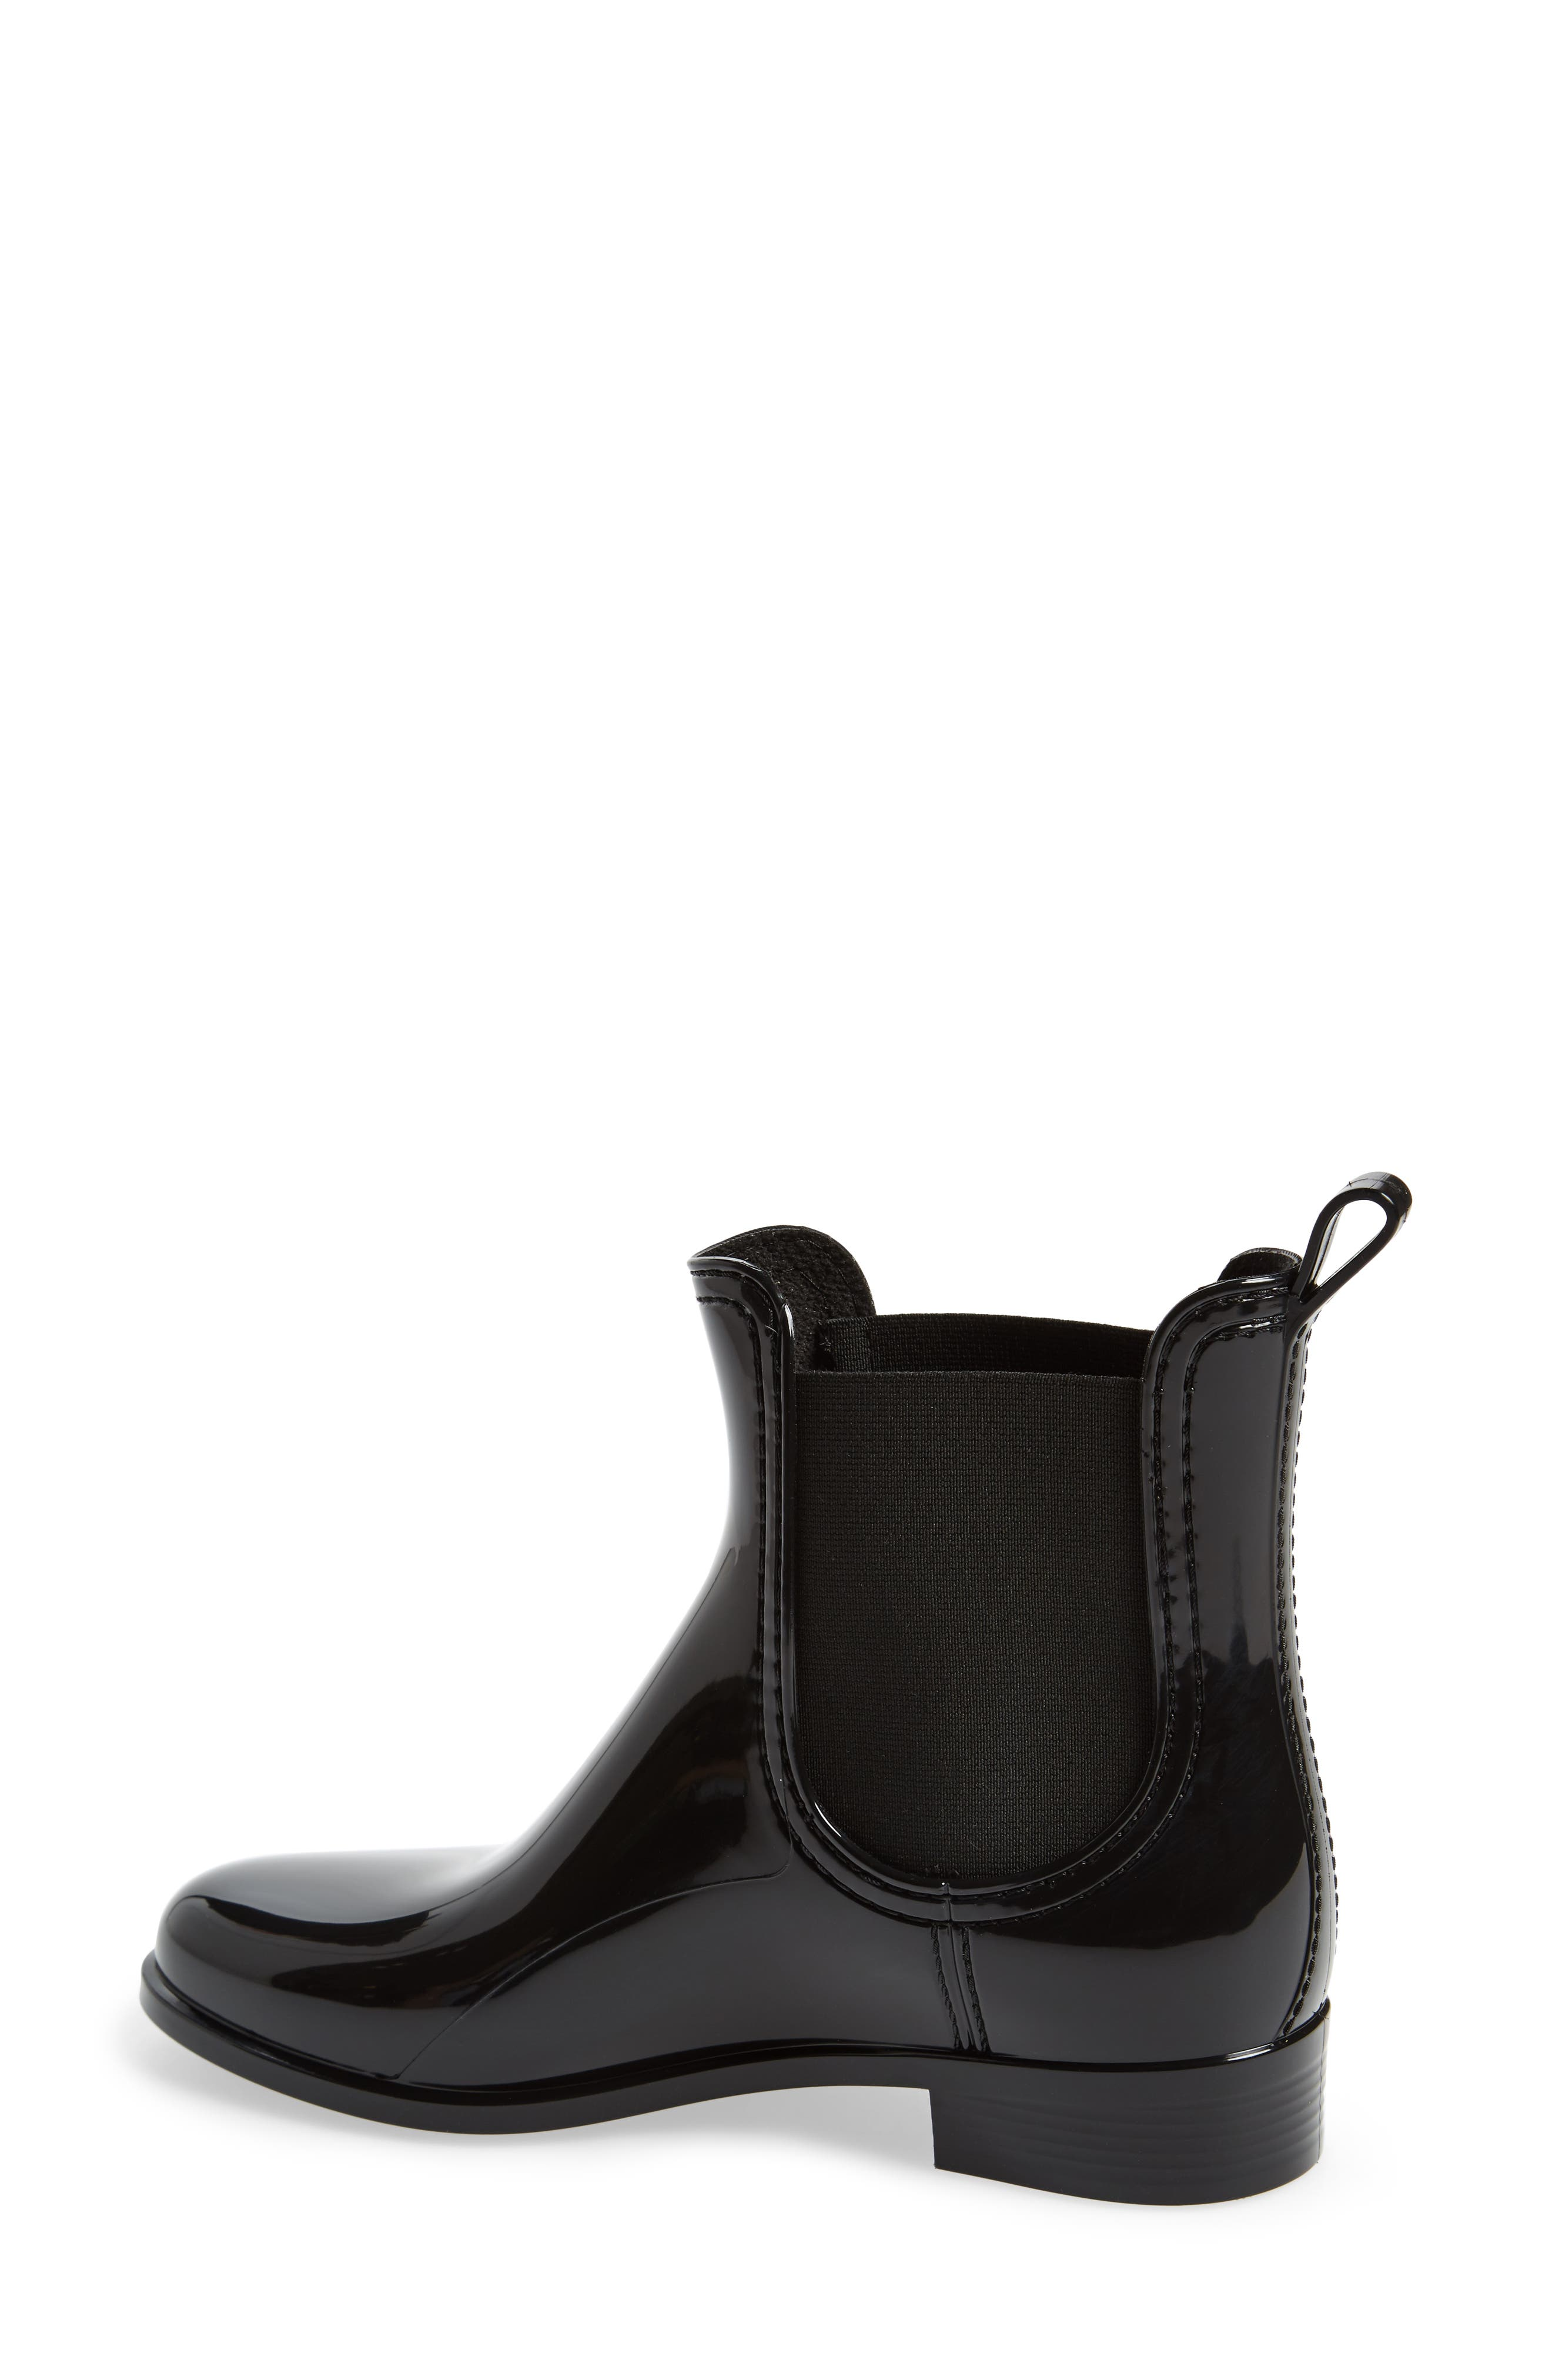 Haley Waterproof Chelsea Boot,                             Alternate thumbnail 2, color,                             Black Gloss